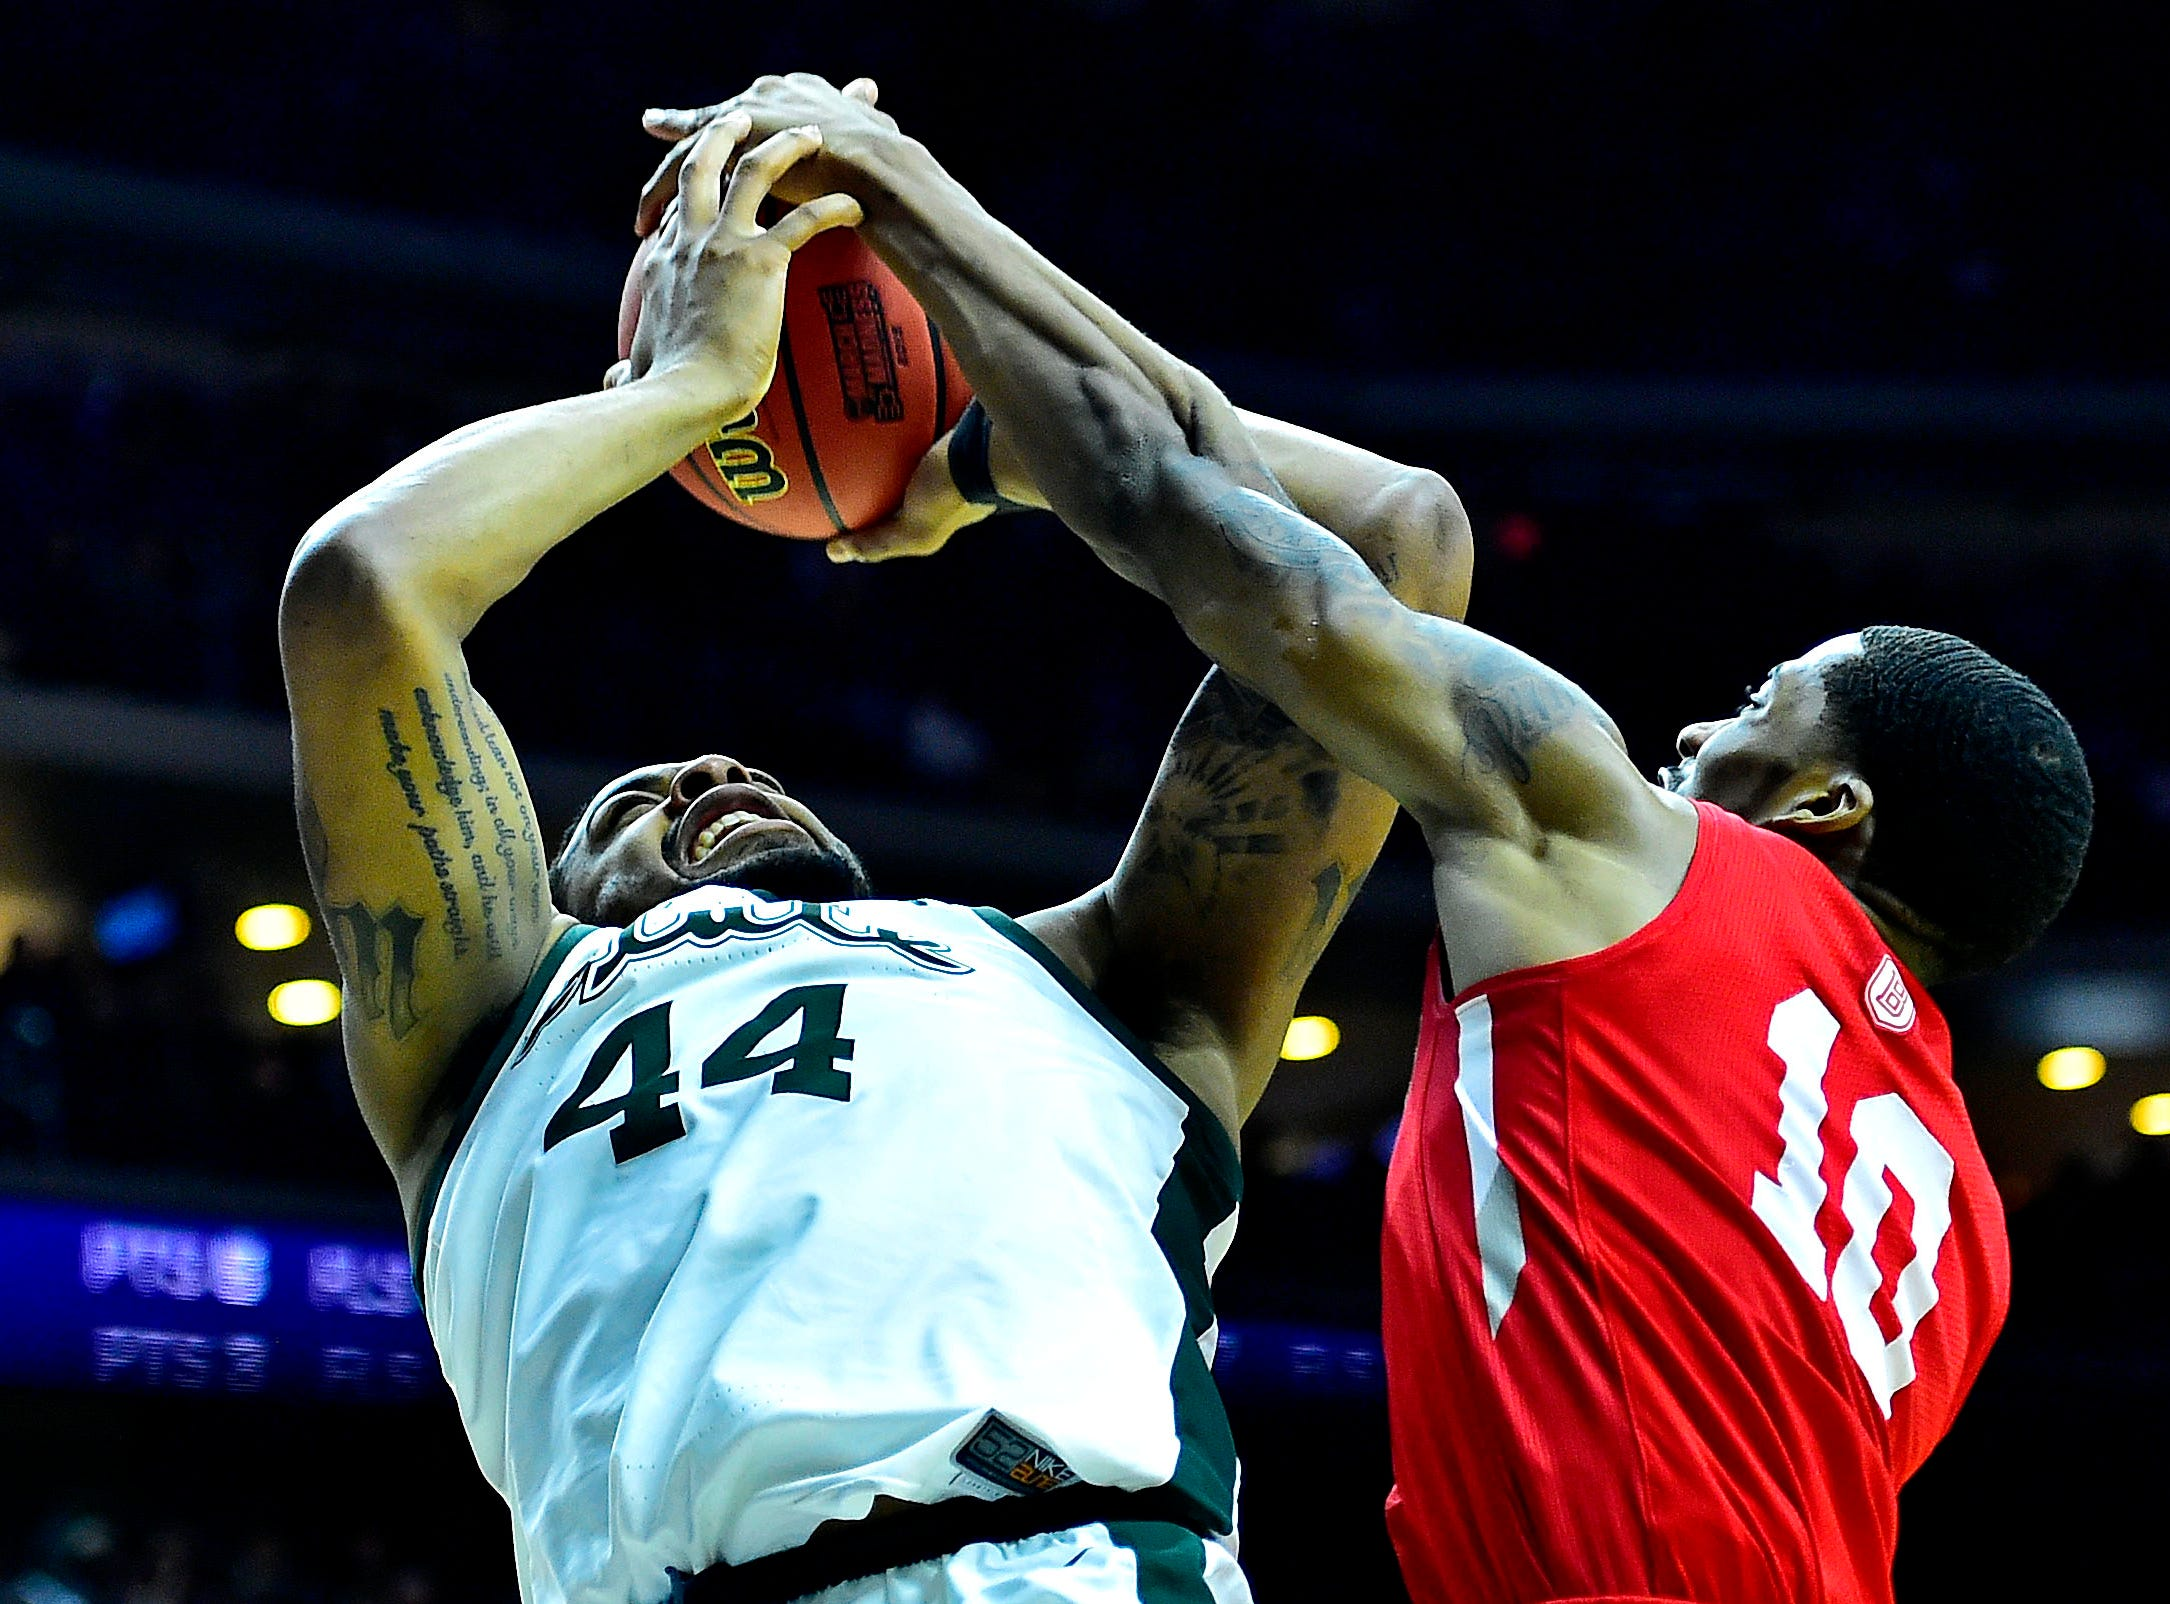 Mar 21, 2019; Des Moines, IA, United States; Michigan State Spartans forward Nick Ward (44) drives to the basket against Bradley Braves forward Elijah Childs (10) \d1\ in the first round of the 2019 NCAA Tournament at Wells Fargo Arena. Mandatory Credit: Jeffrey Becker-USA TODAY Sports